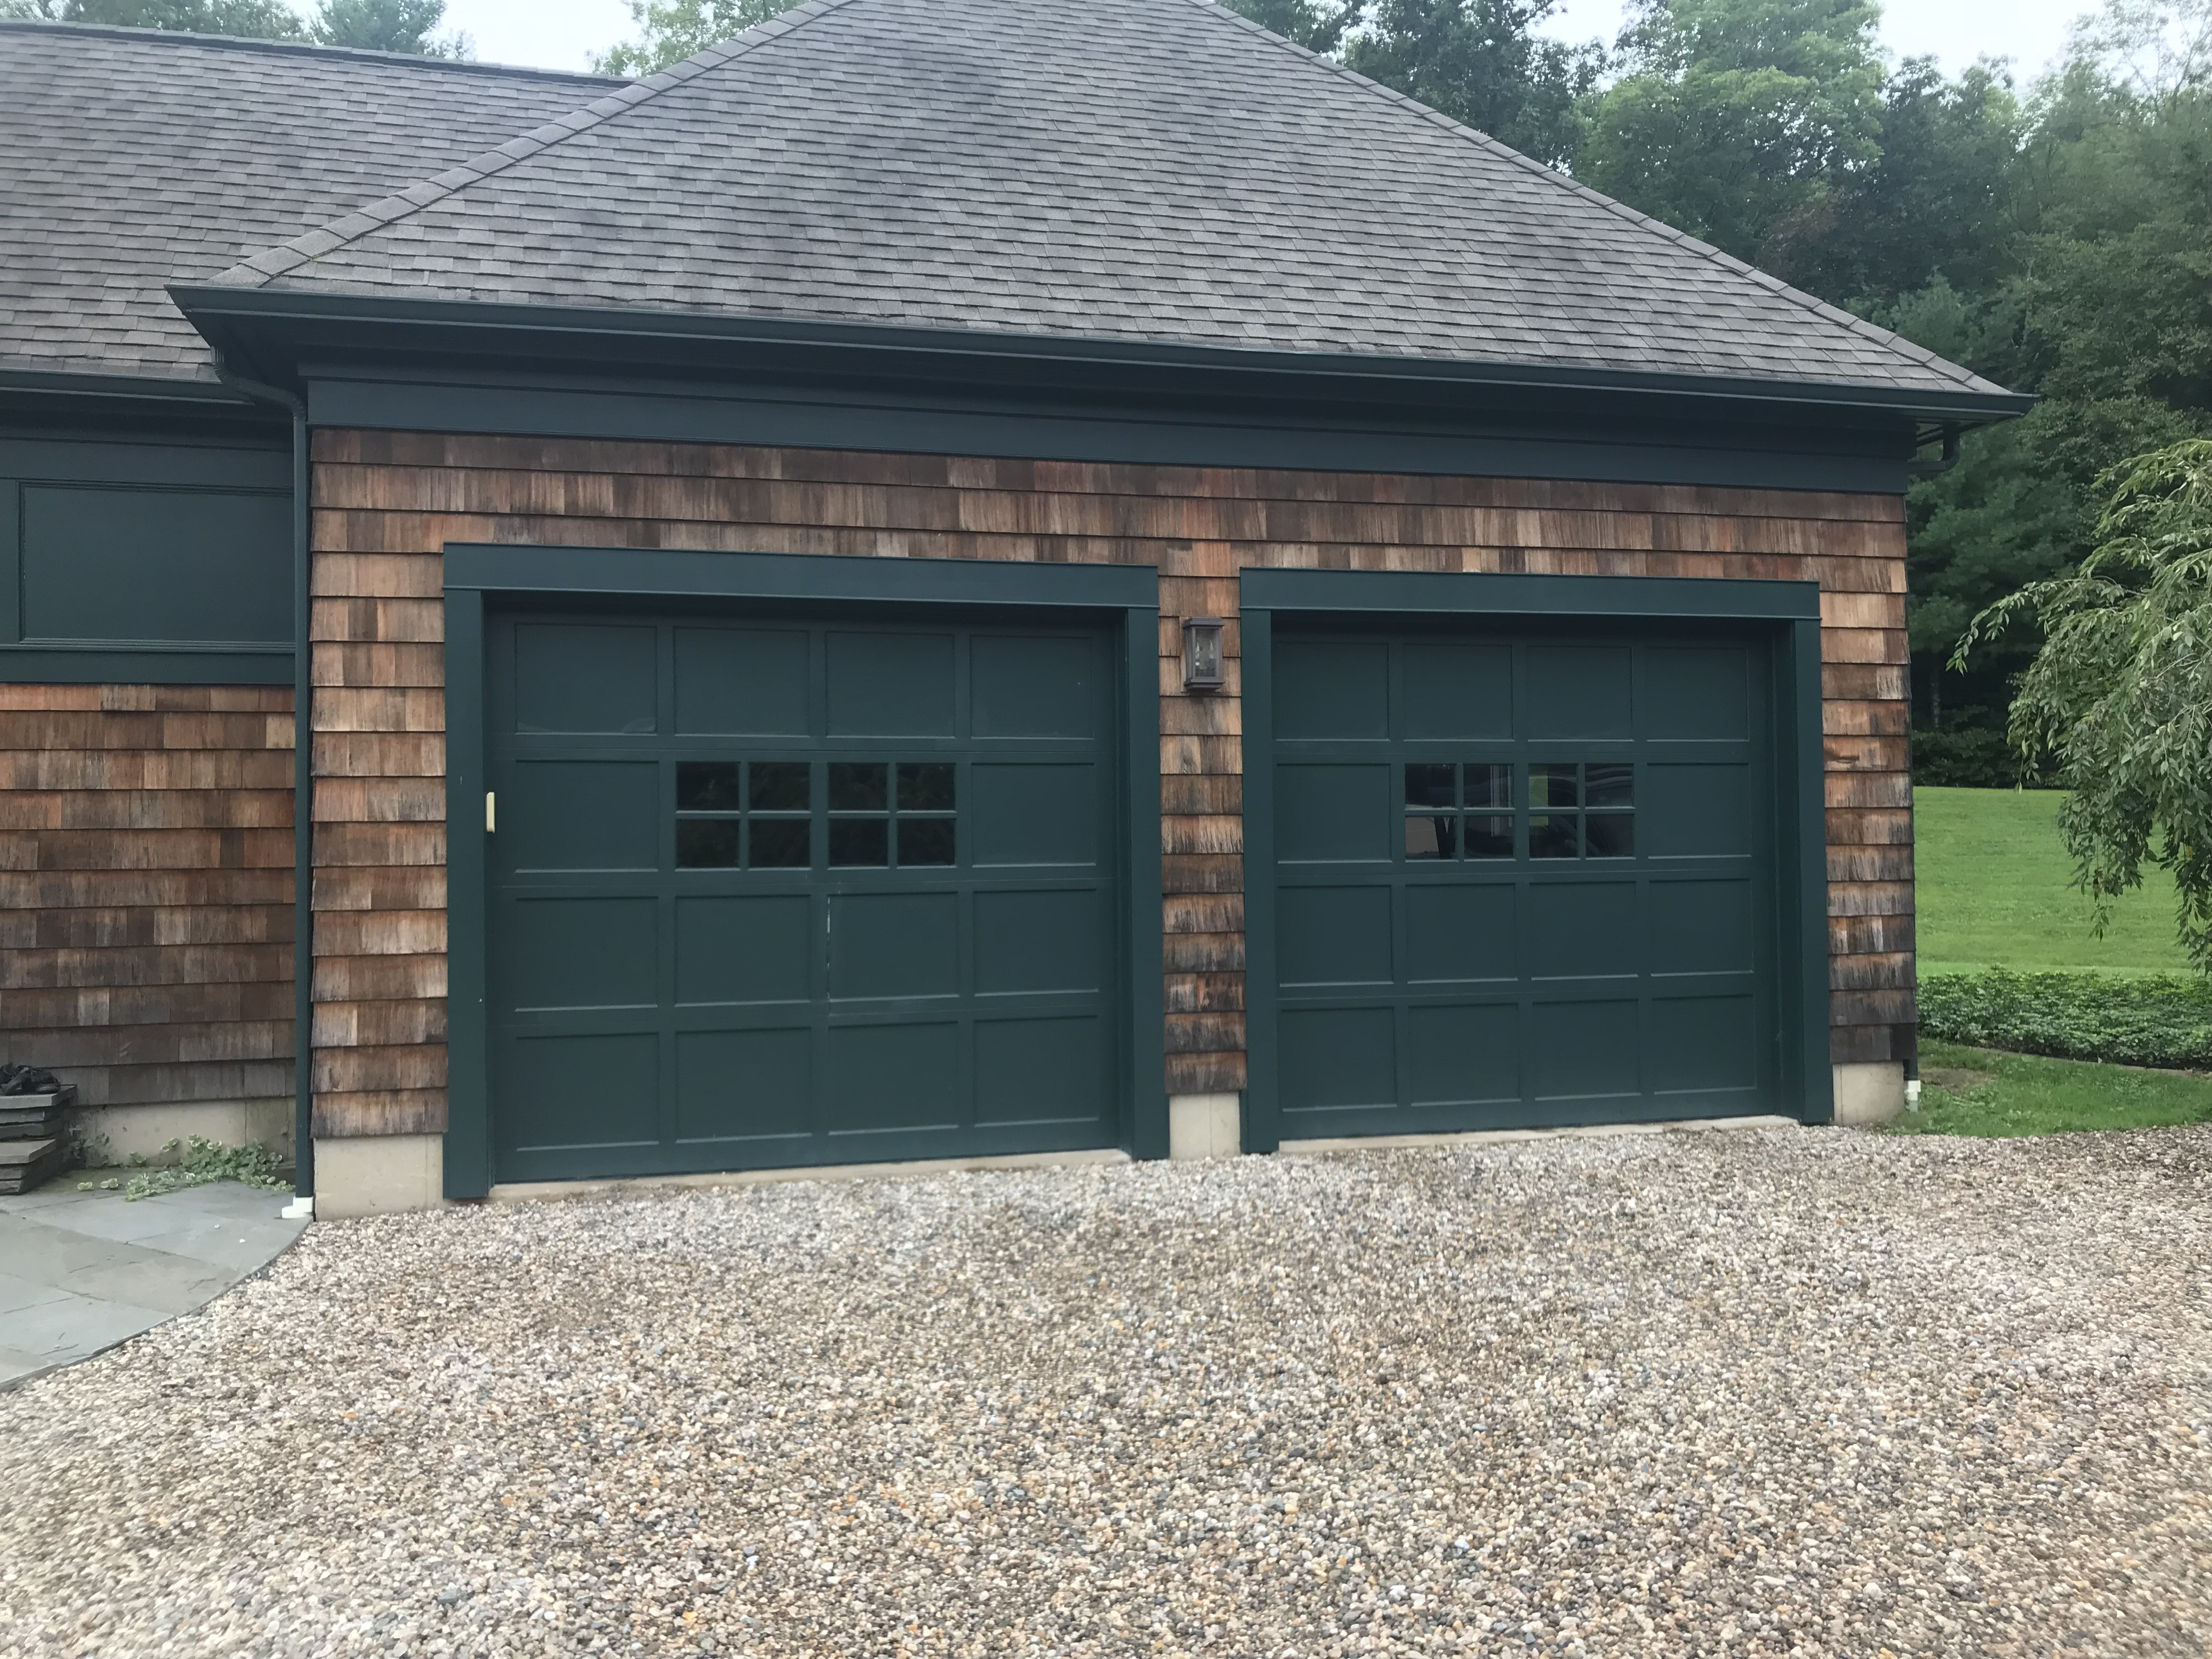 Your garage doors should complement the rest of your home and work well